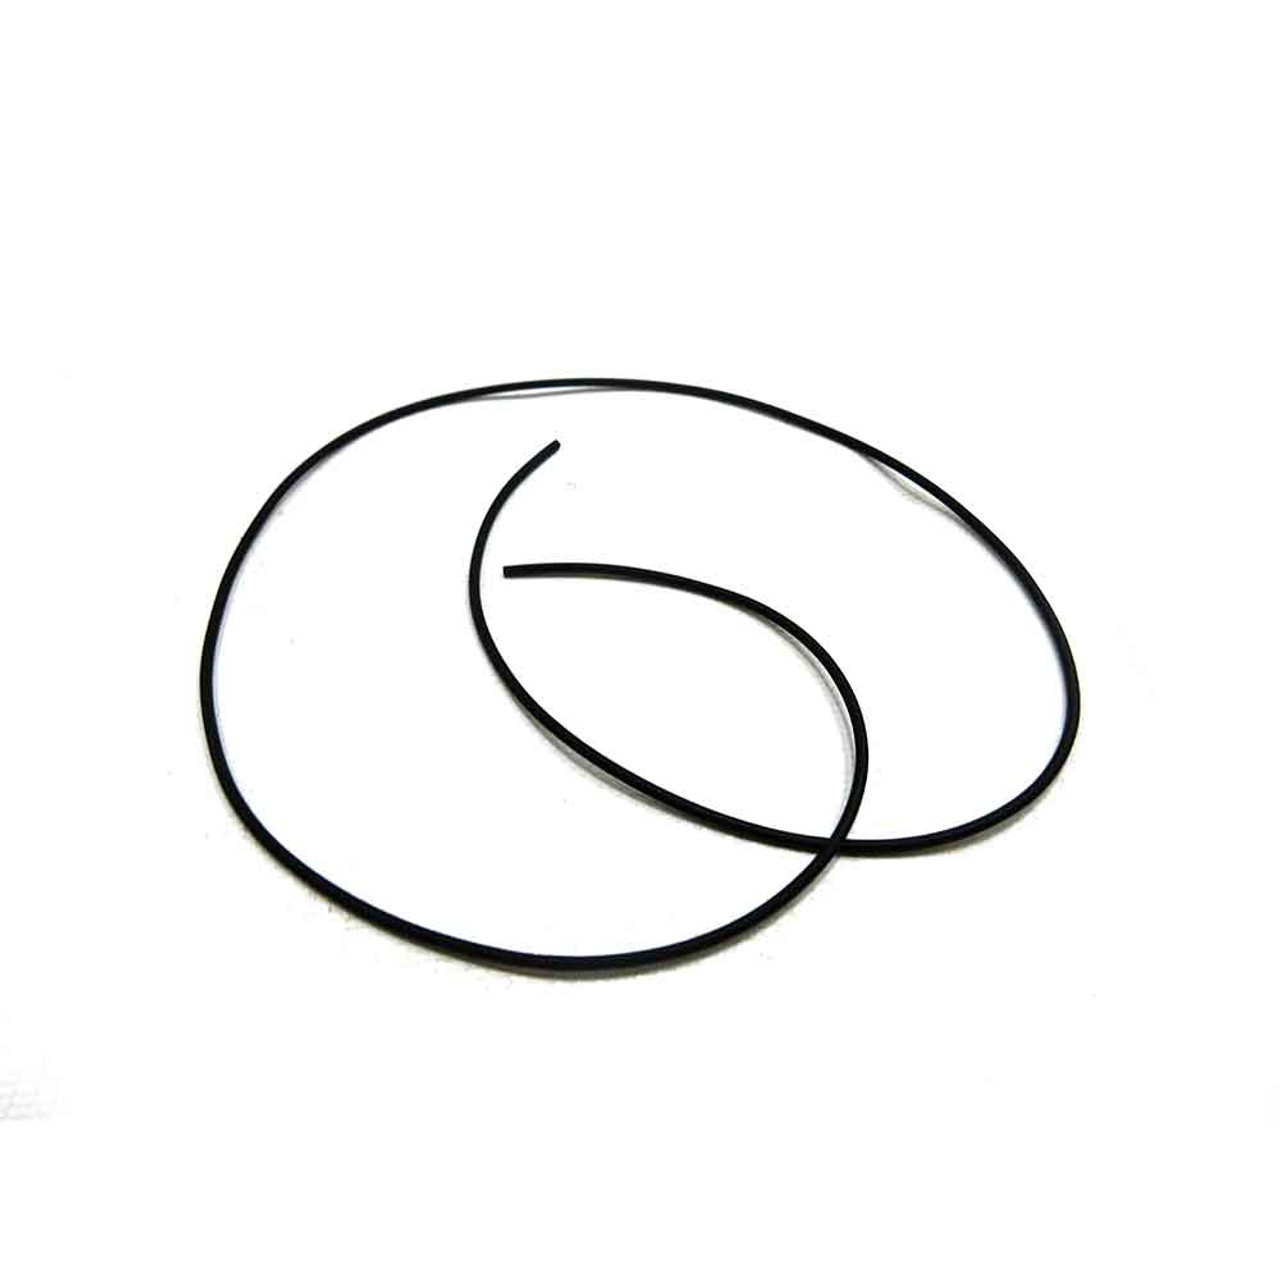 Sidecover O-Ring